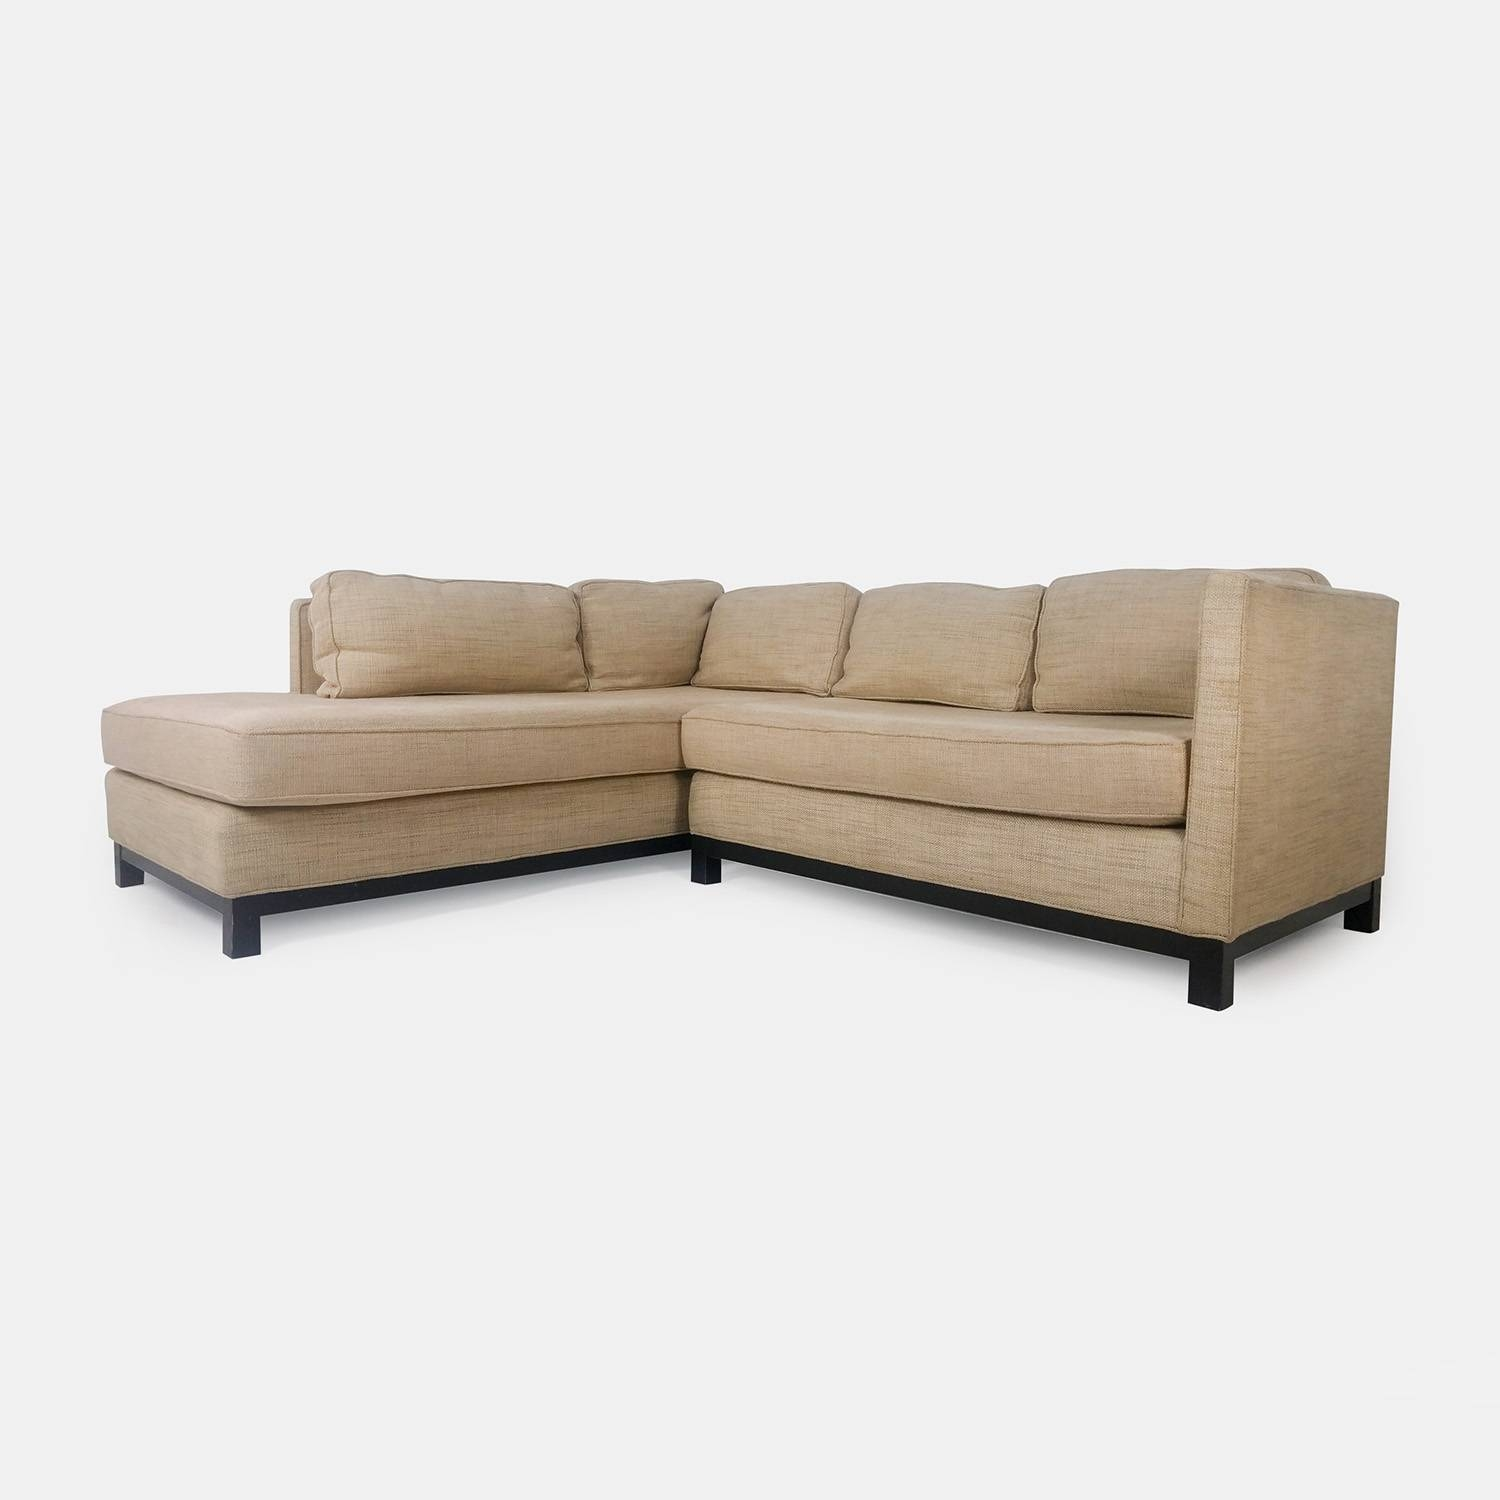 mitchell gold sectional sofa 2 seat length the best clifton sofas